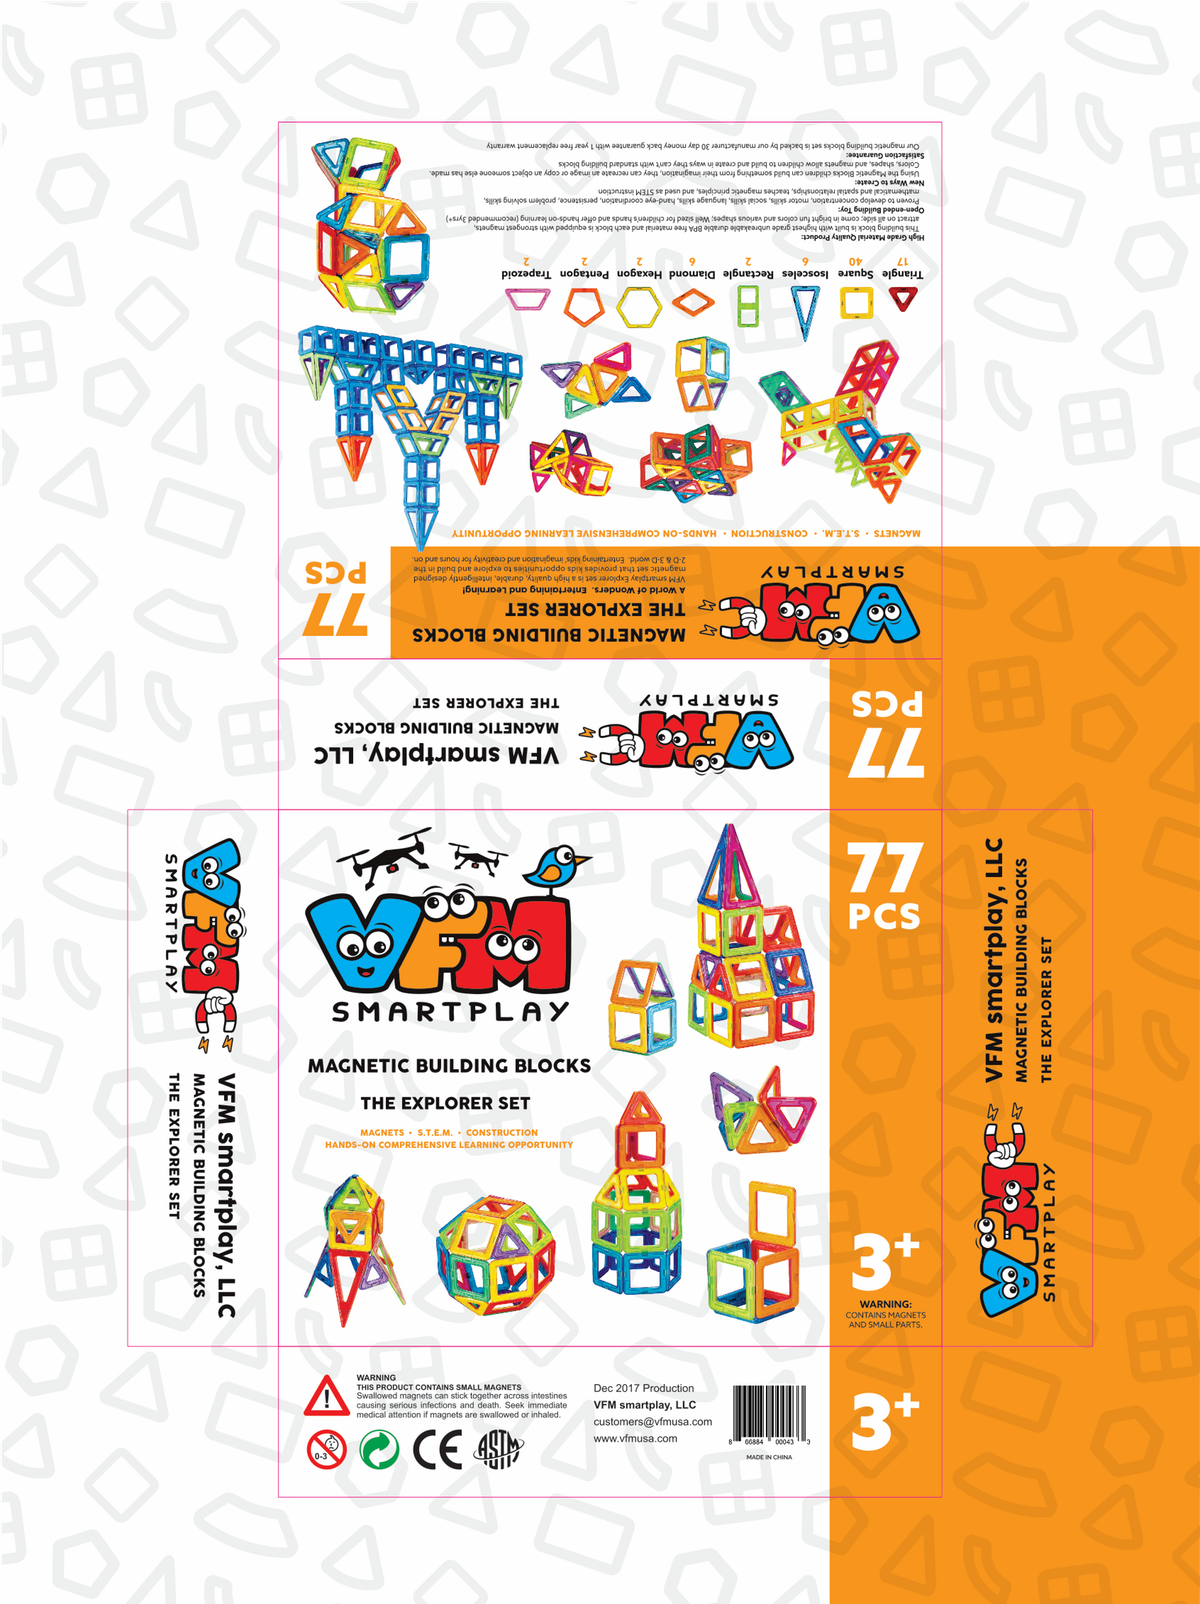 Packaging for the VFM smartplay magnetic building block toys